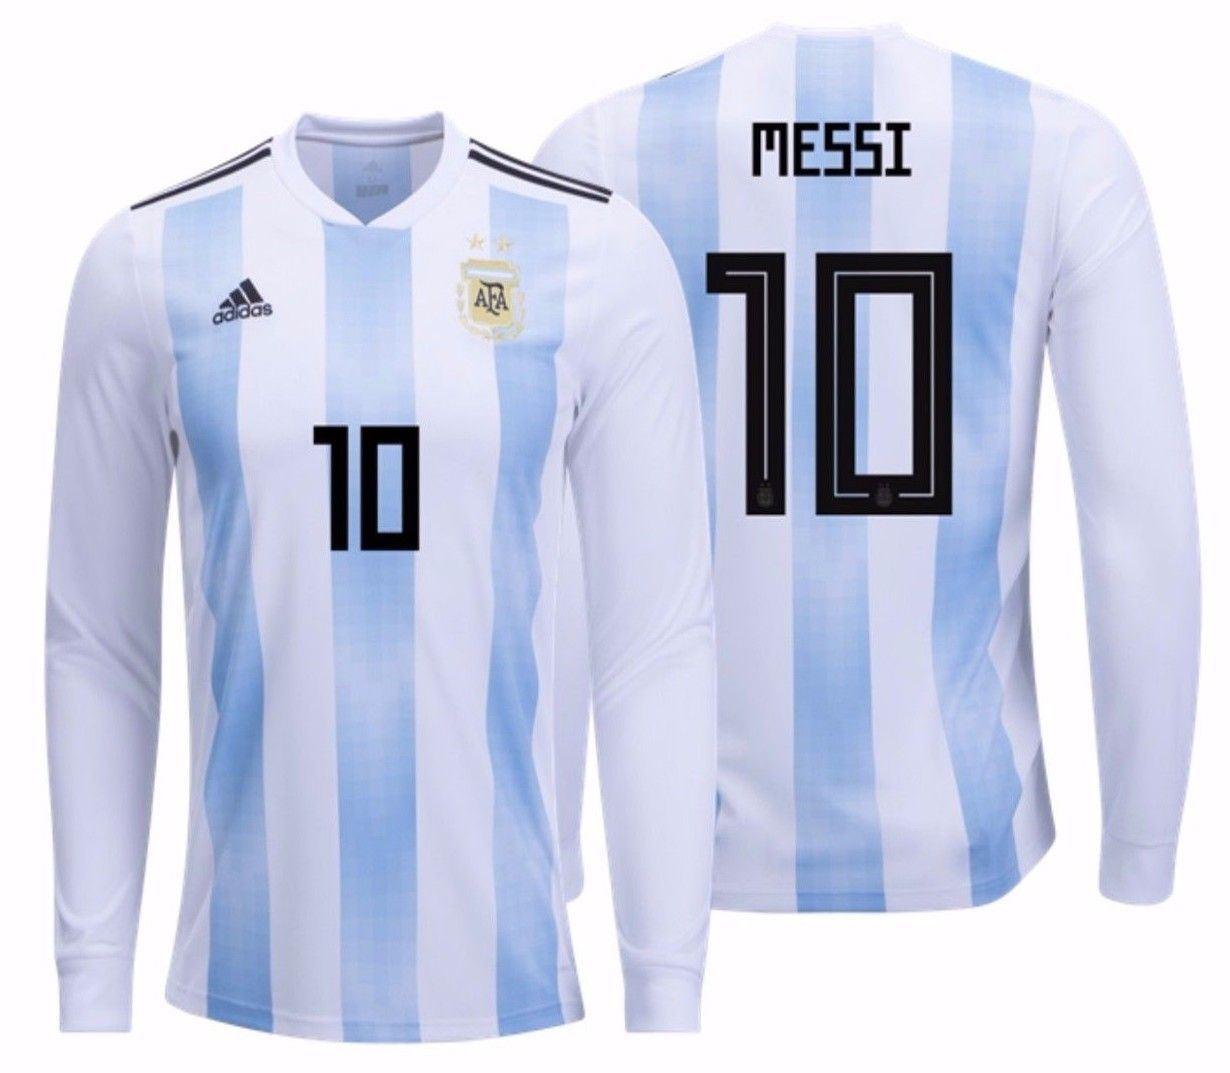 39b3eea18b9 S l1600. S l1600. Previous. ADIDAS LIONEL MESSI ARGENTINA LONG SLEEVE HOME  JERSEY FIFA WORLD CUP 2018. ADIDAS ...